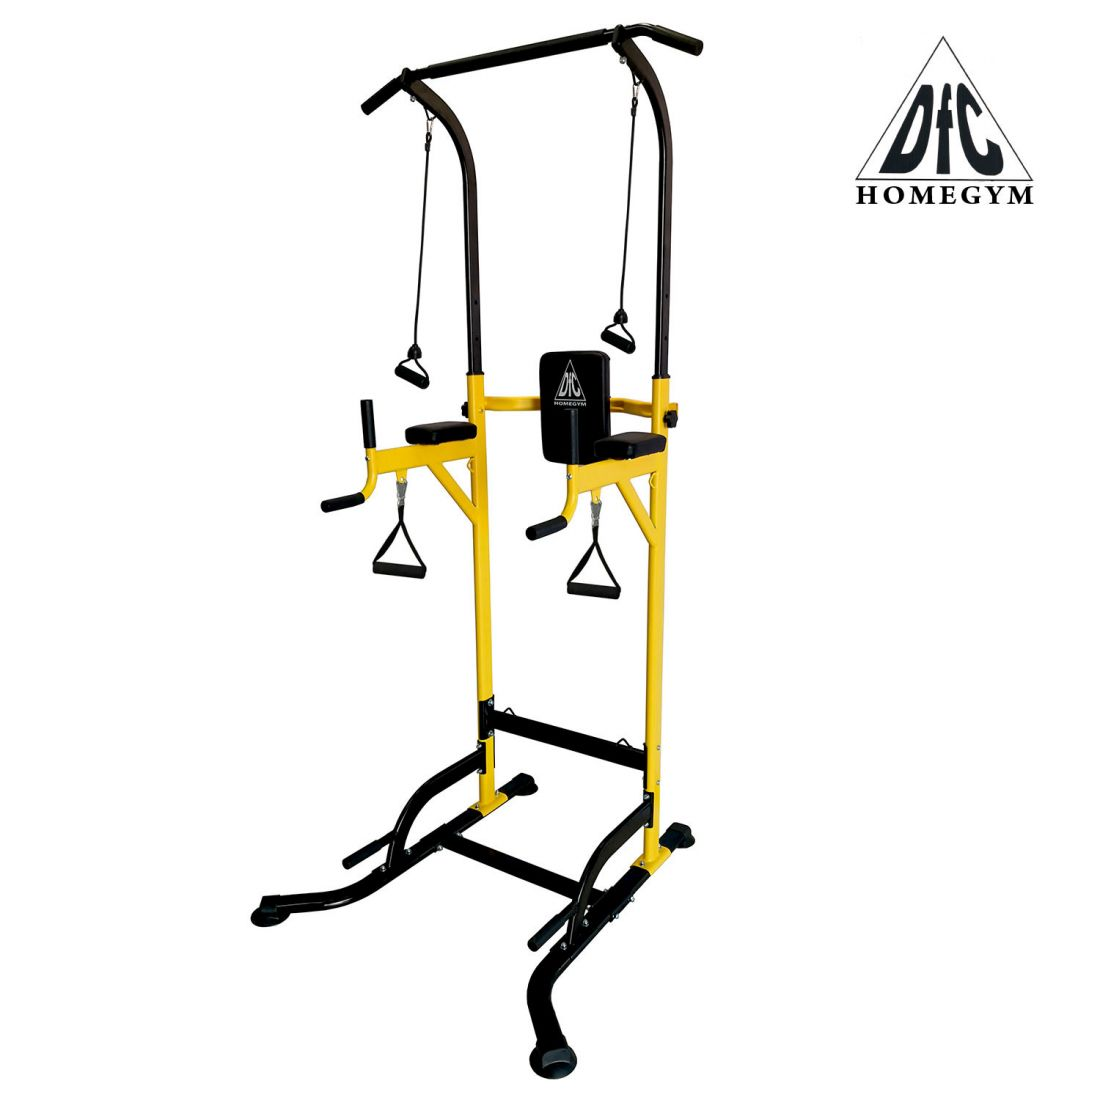 DFC Homegym G008Y